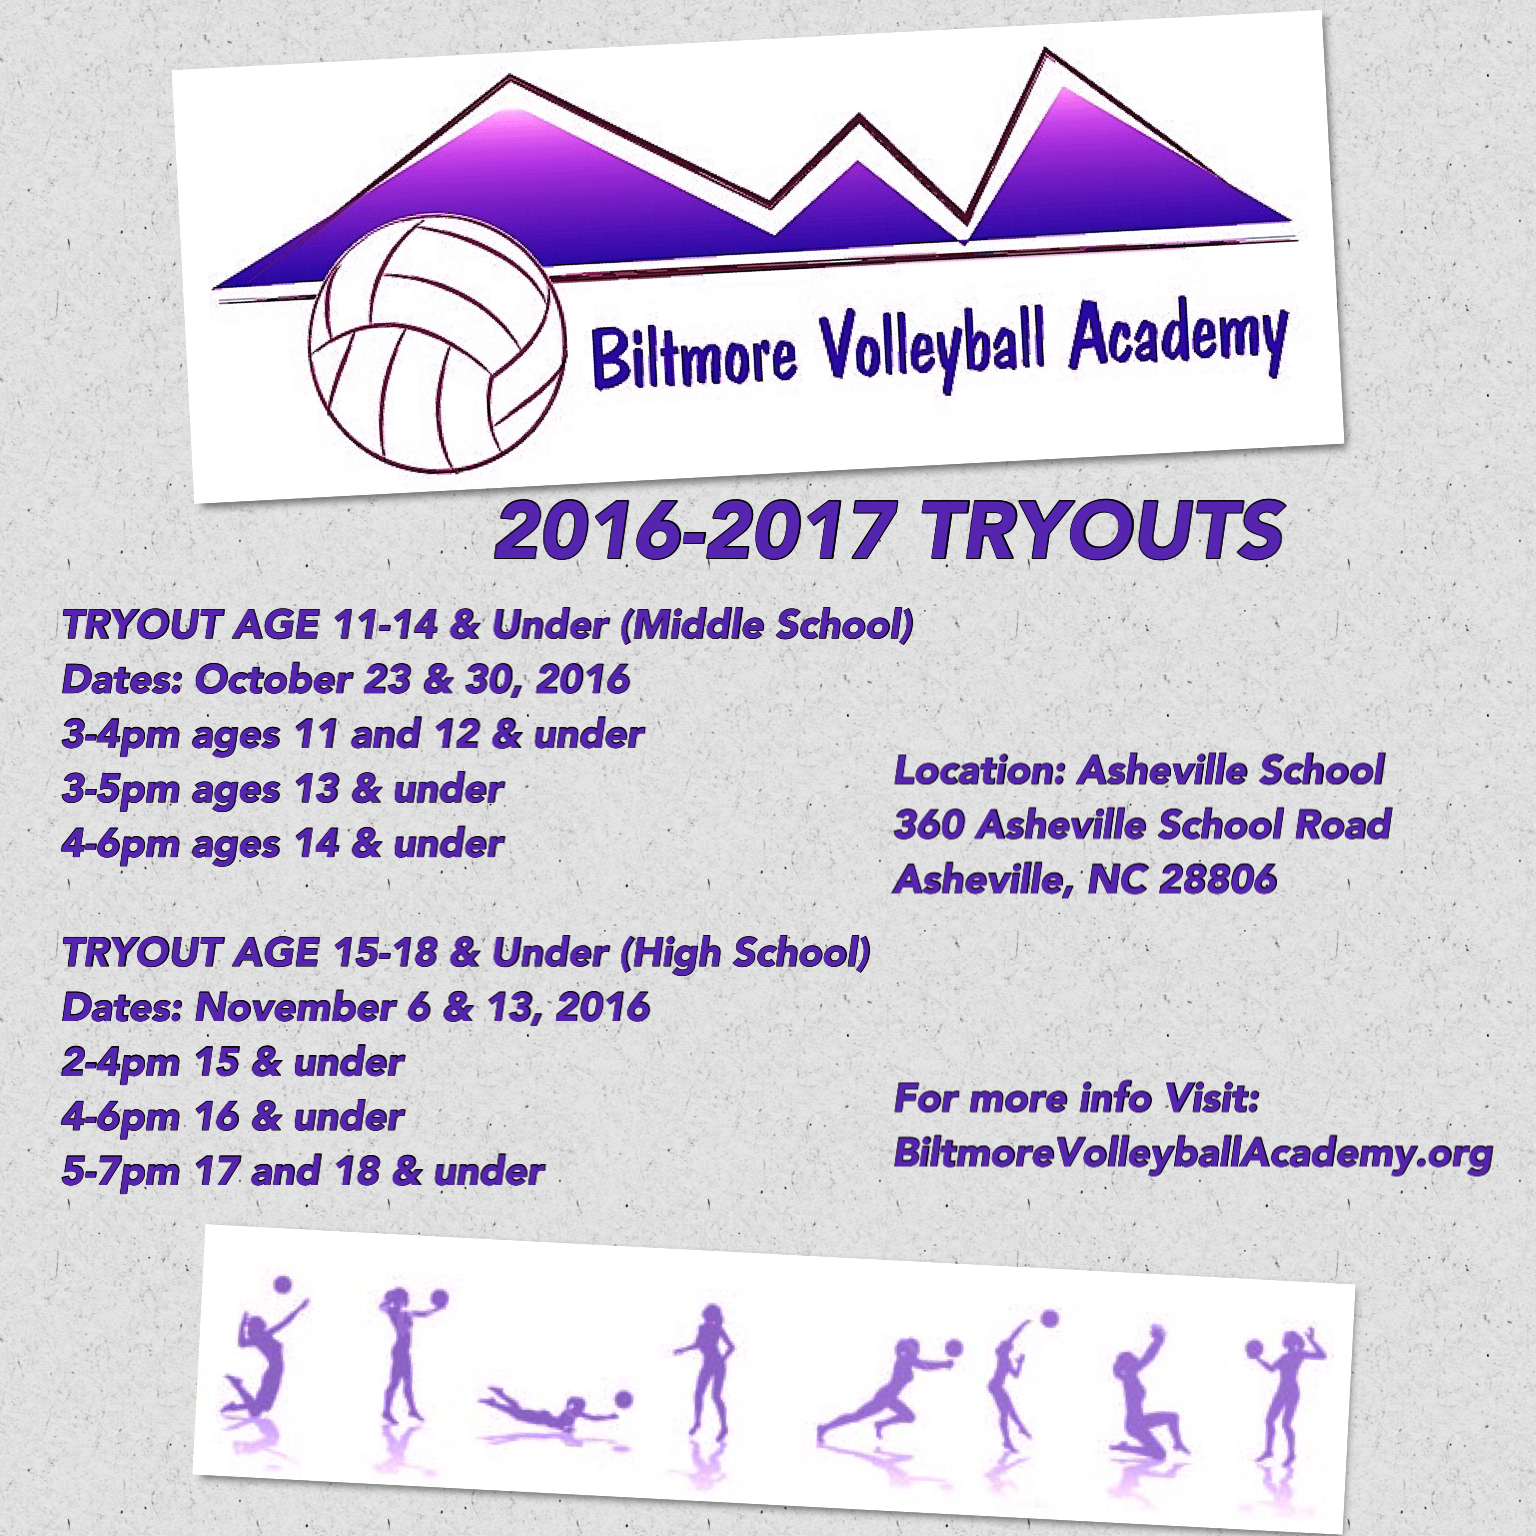 2016-2017 Tryouts